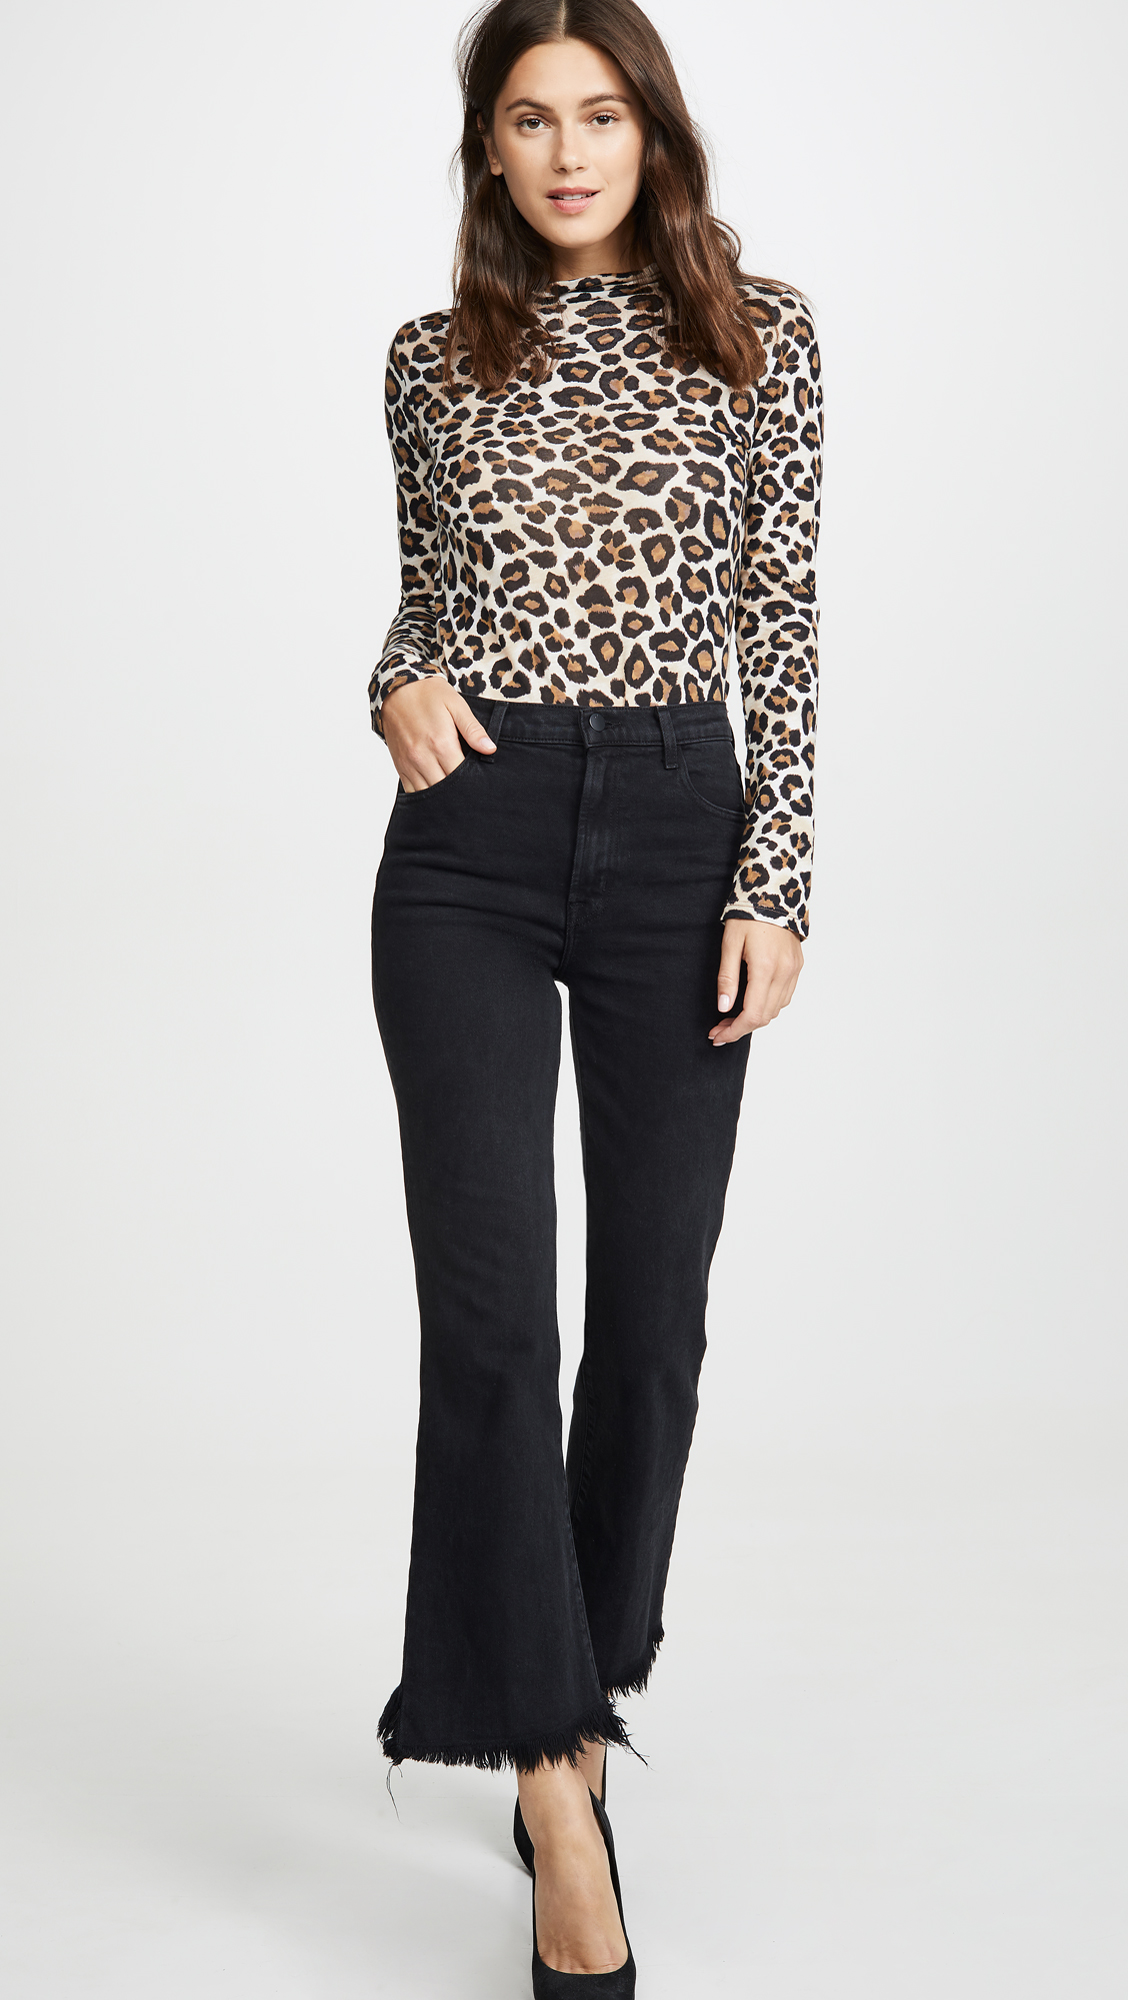 Jeans of the Week: J Brand Julie High Rise Flare